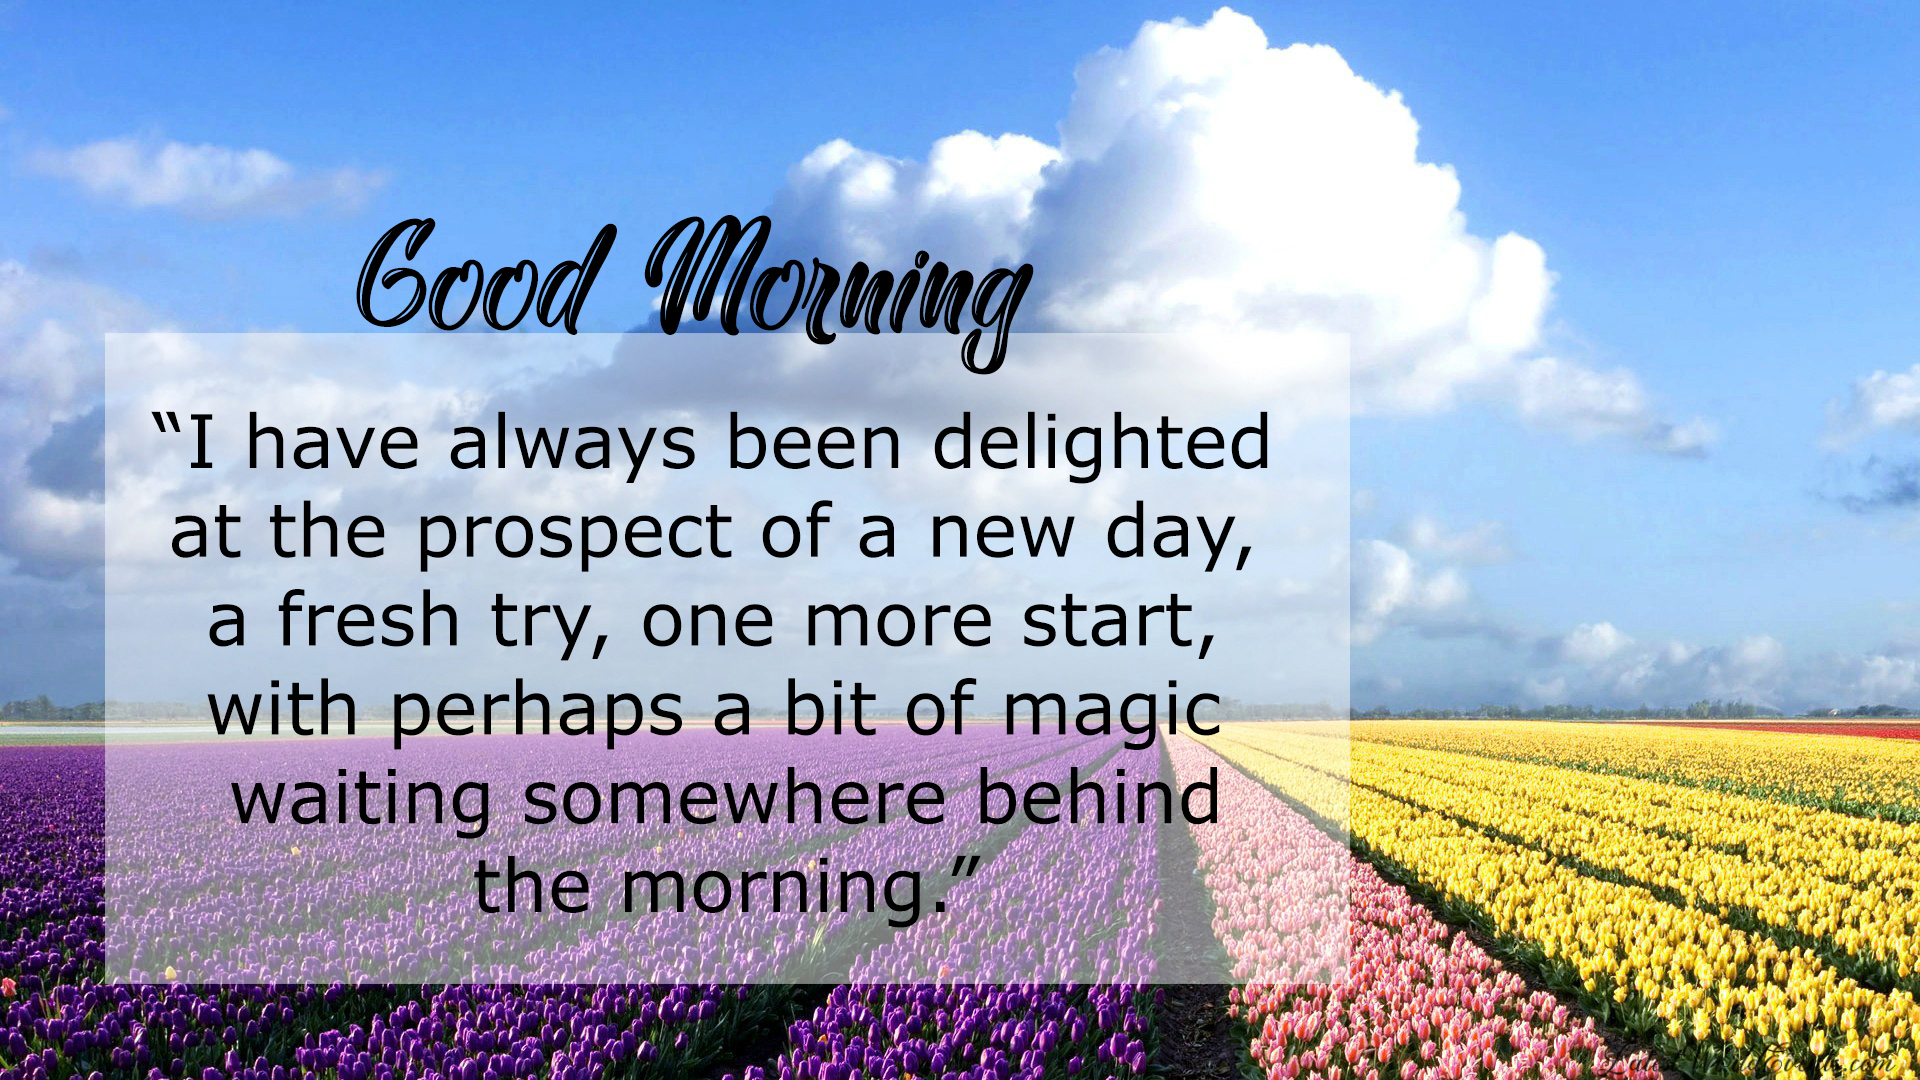 DOwnload-good-morning-messages-for-friends-with-pictures